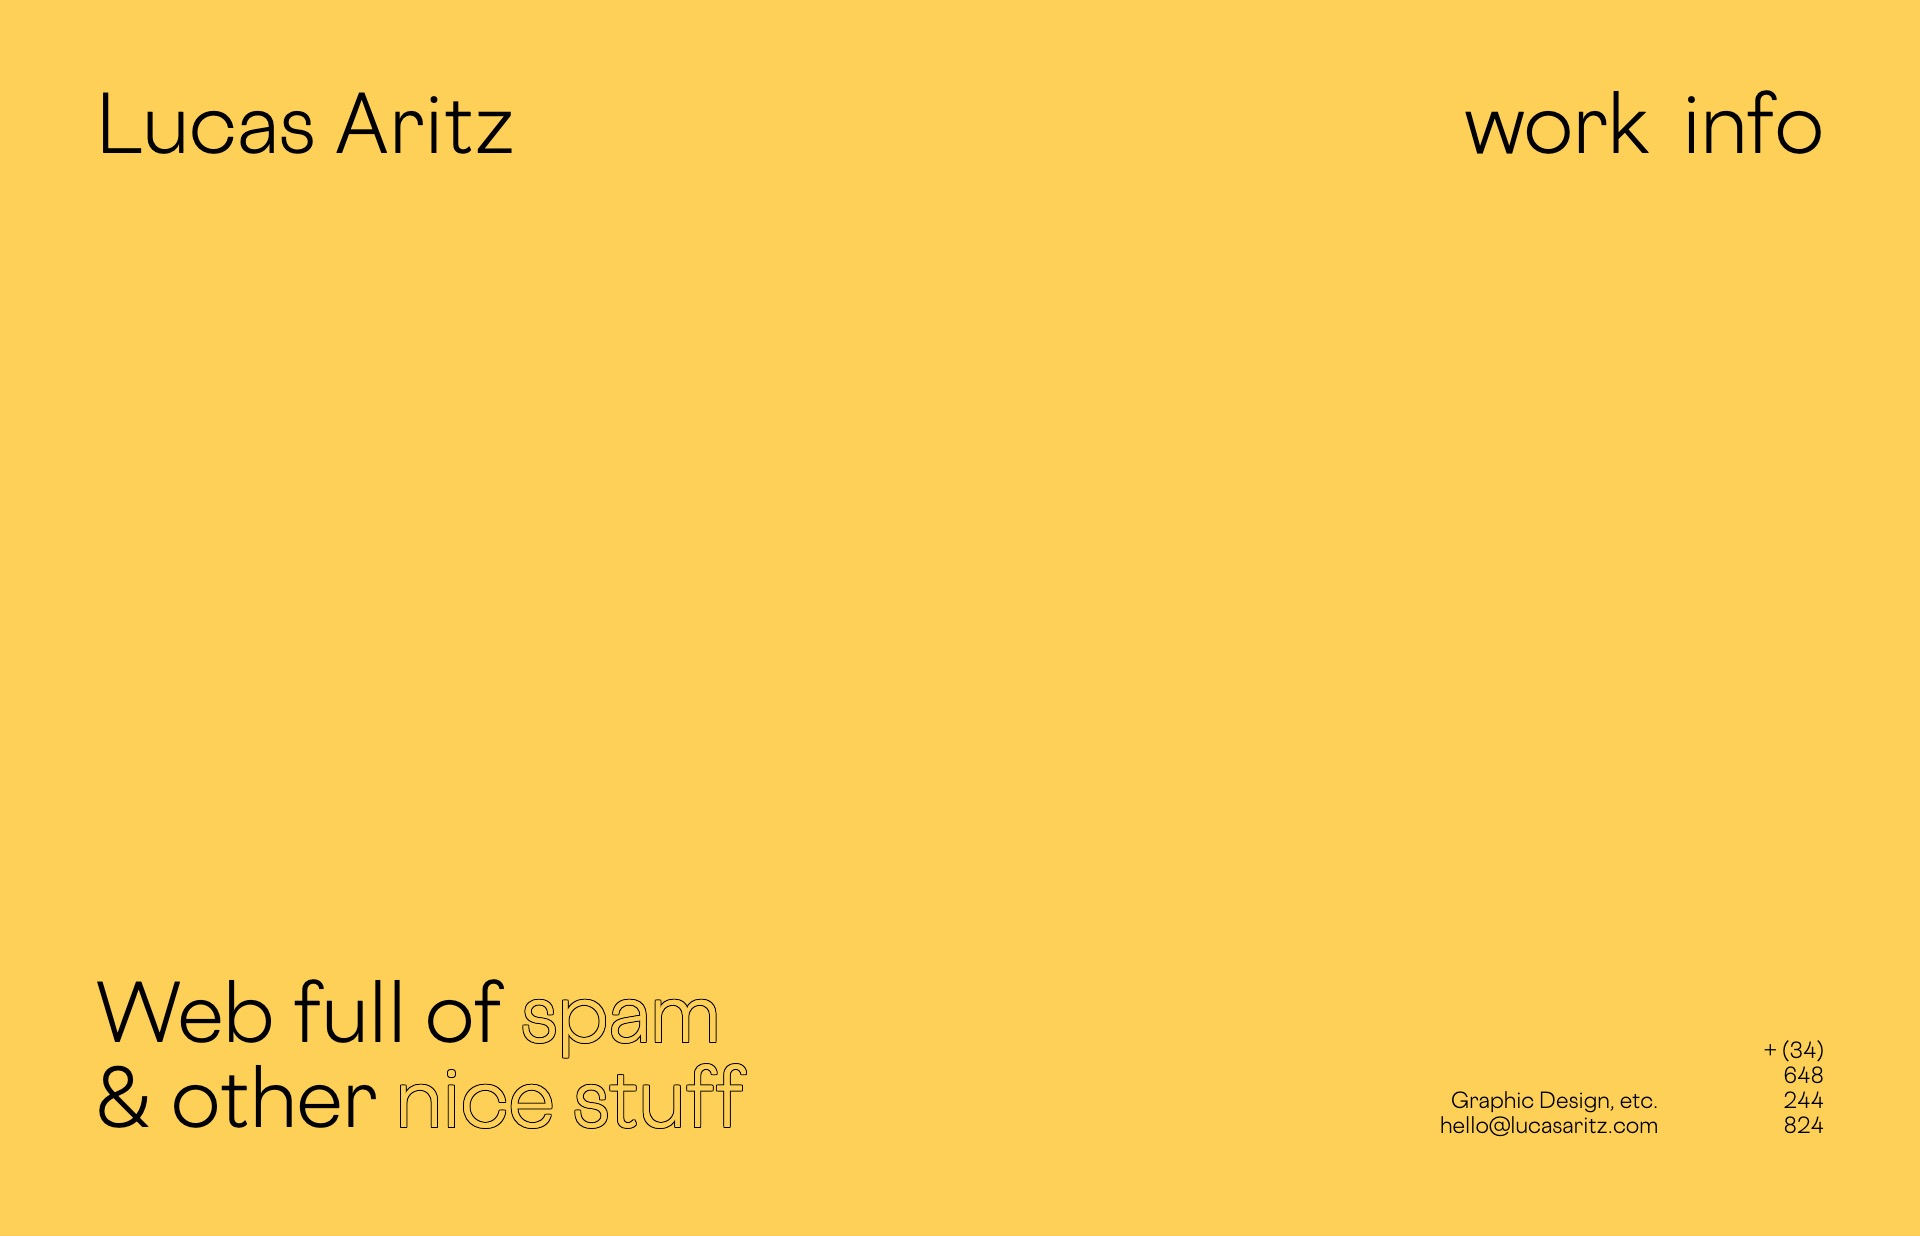 Screenshot of the website Lucas Aritz, featured on The Gallery, a curated collection of minimal websites